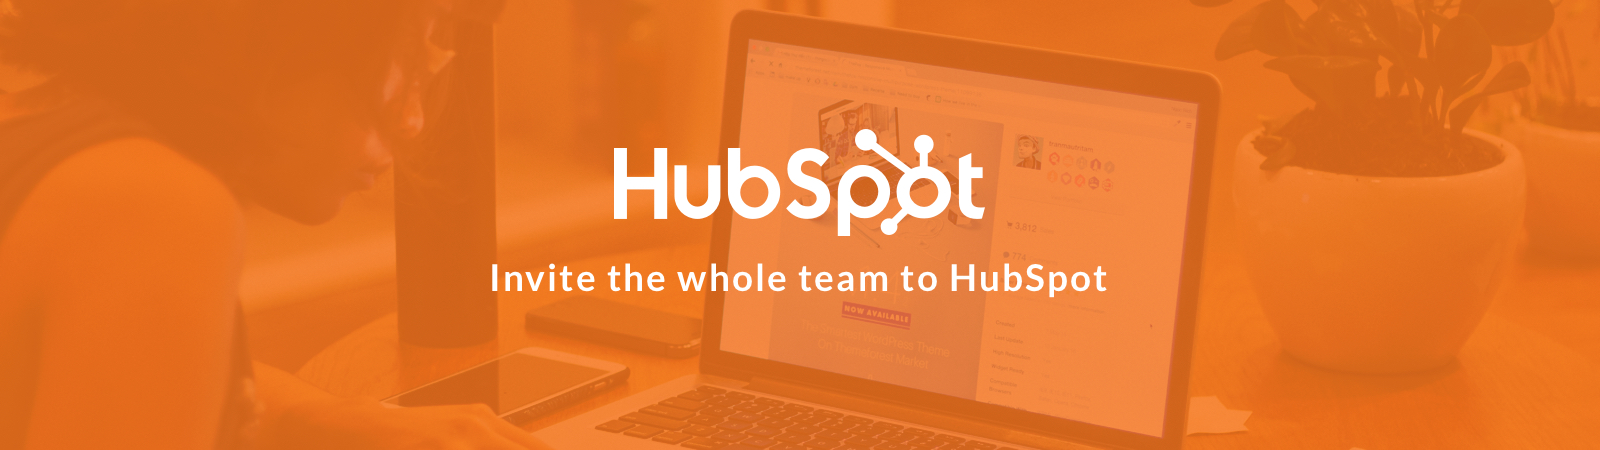 Invite the whole team to HubSpot